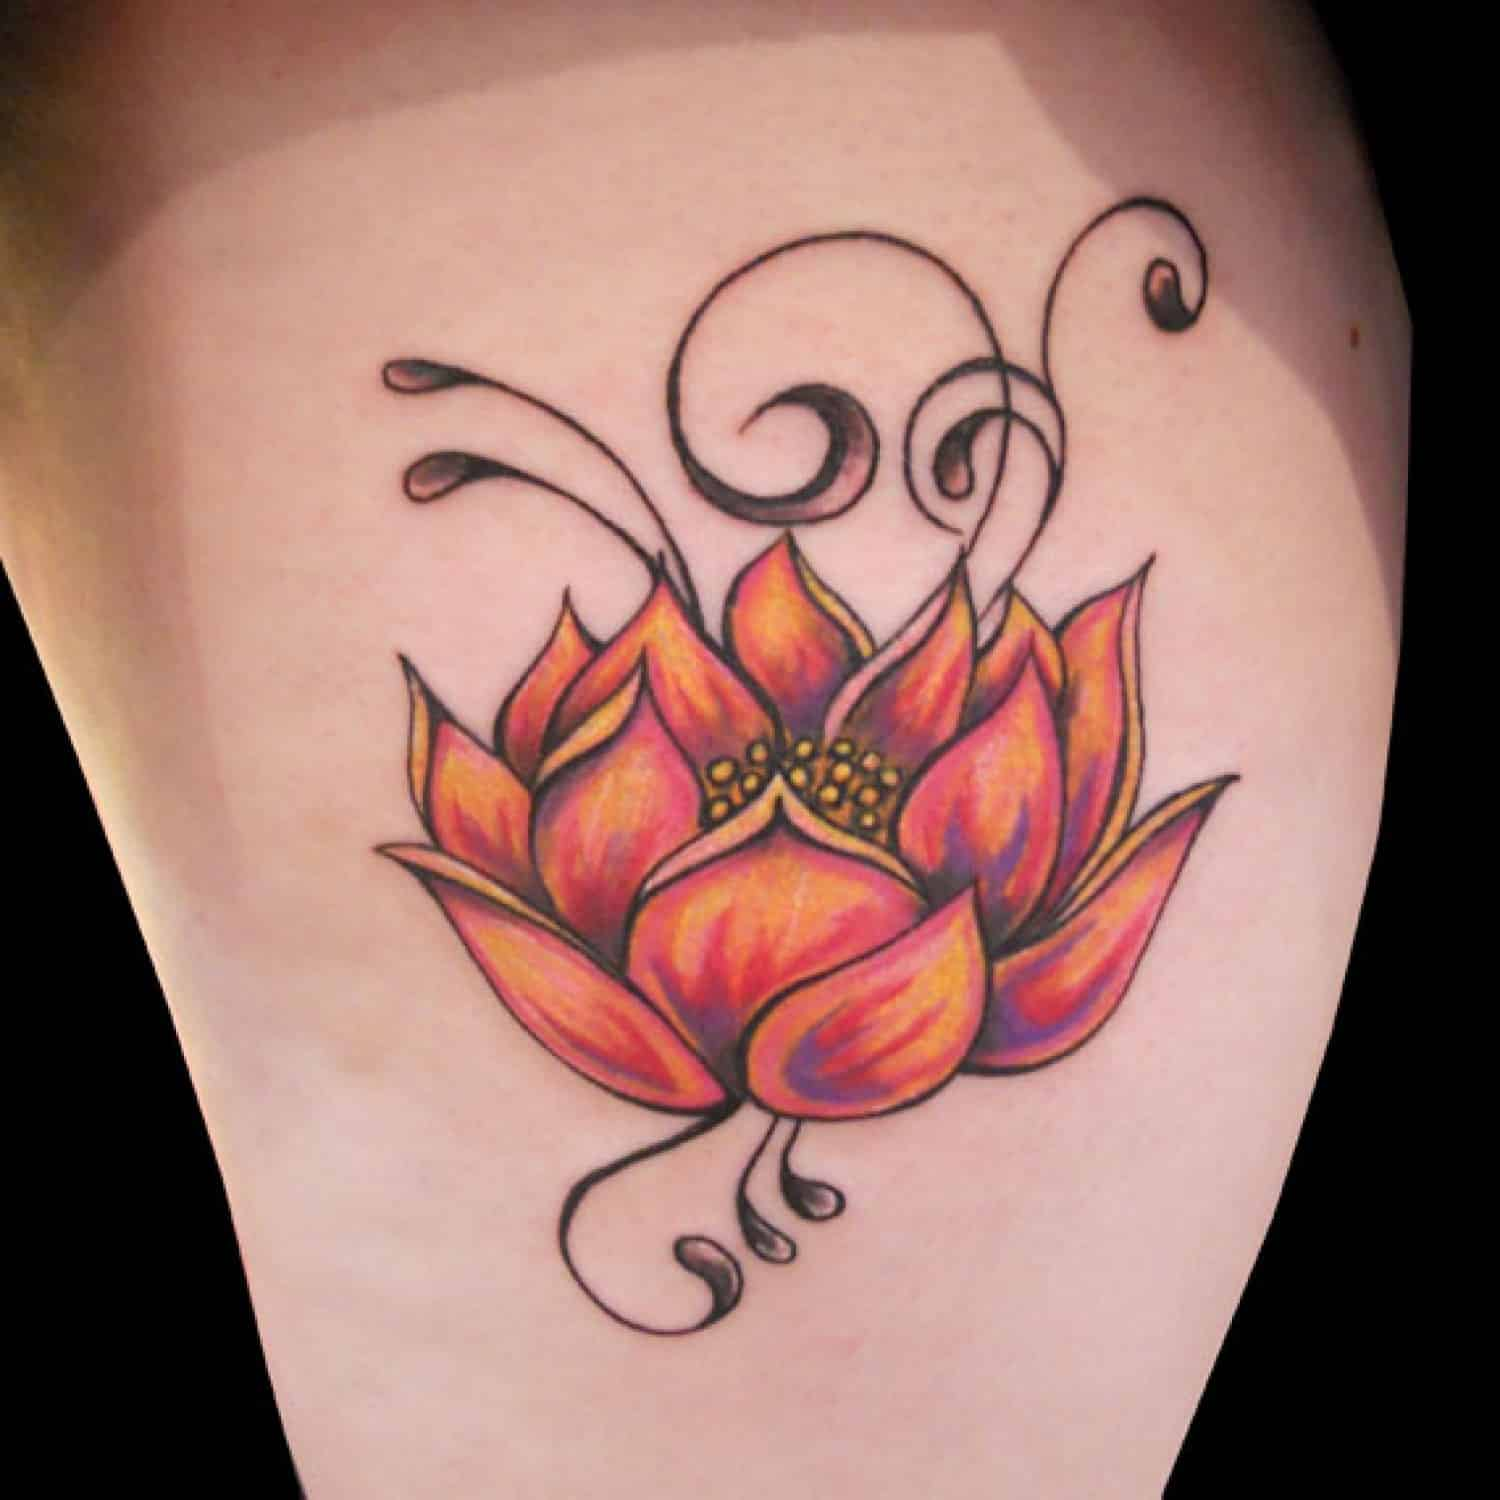 35 Unique Lotus Flower Tattoo Designs And Meaning 2018 Collection